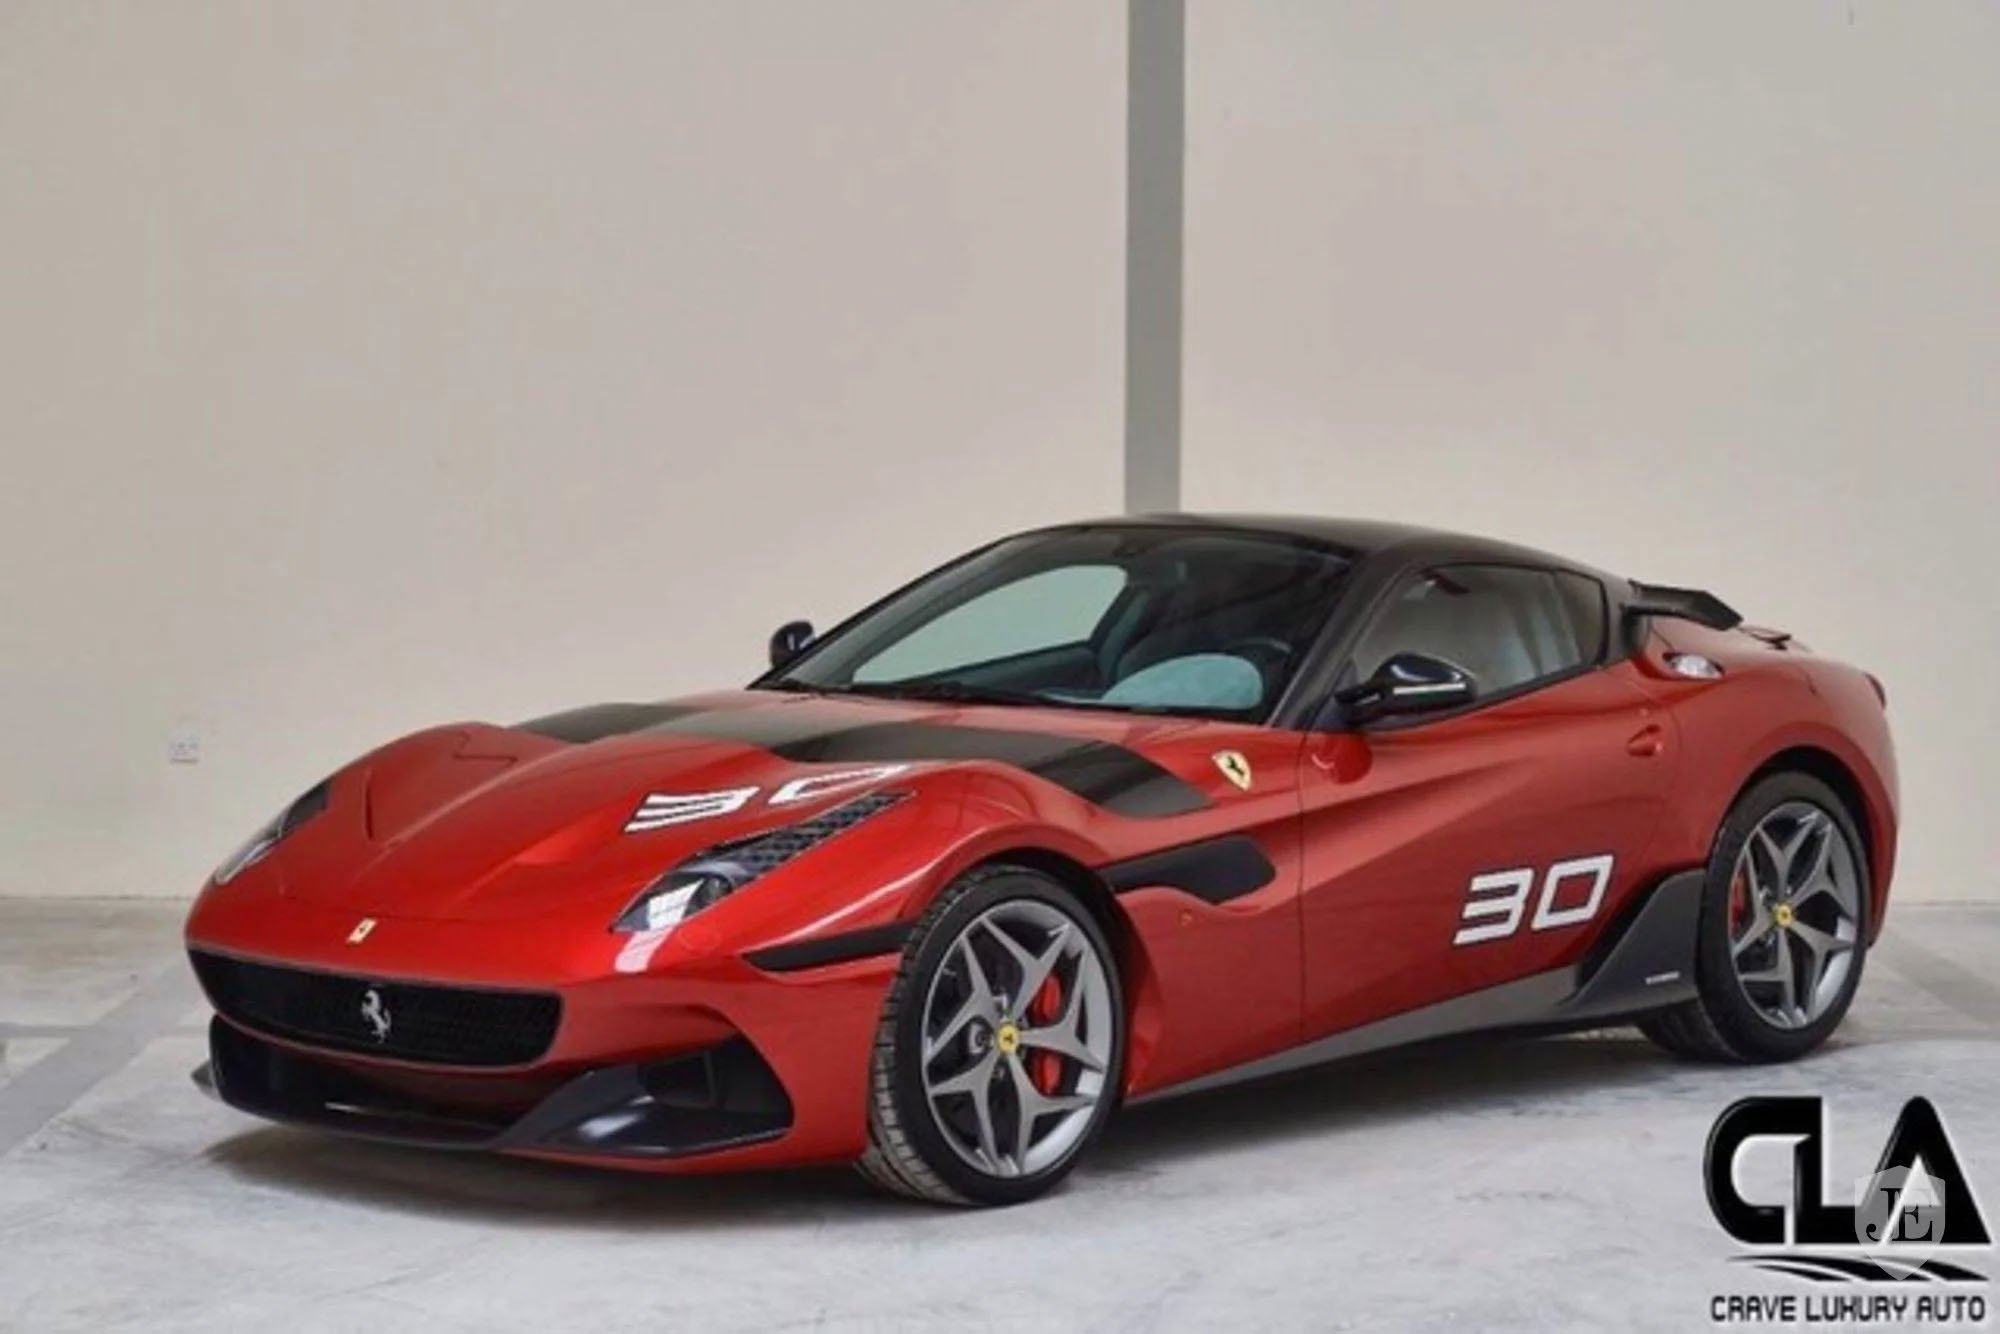 Ferrari SP30 one-off for sale (1)